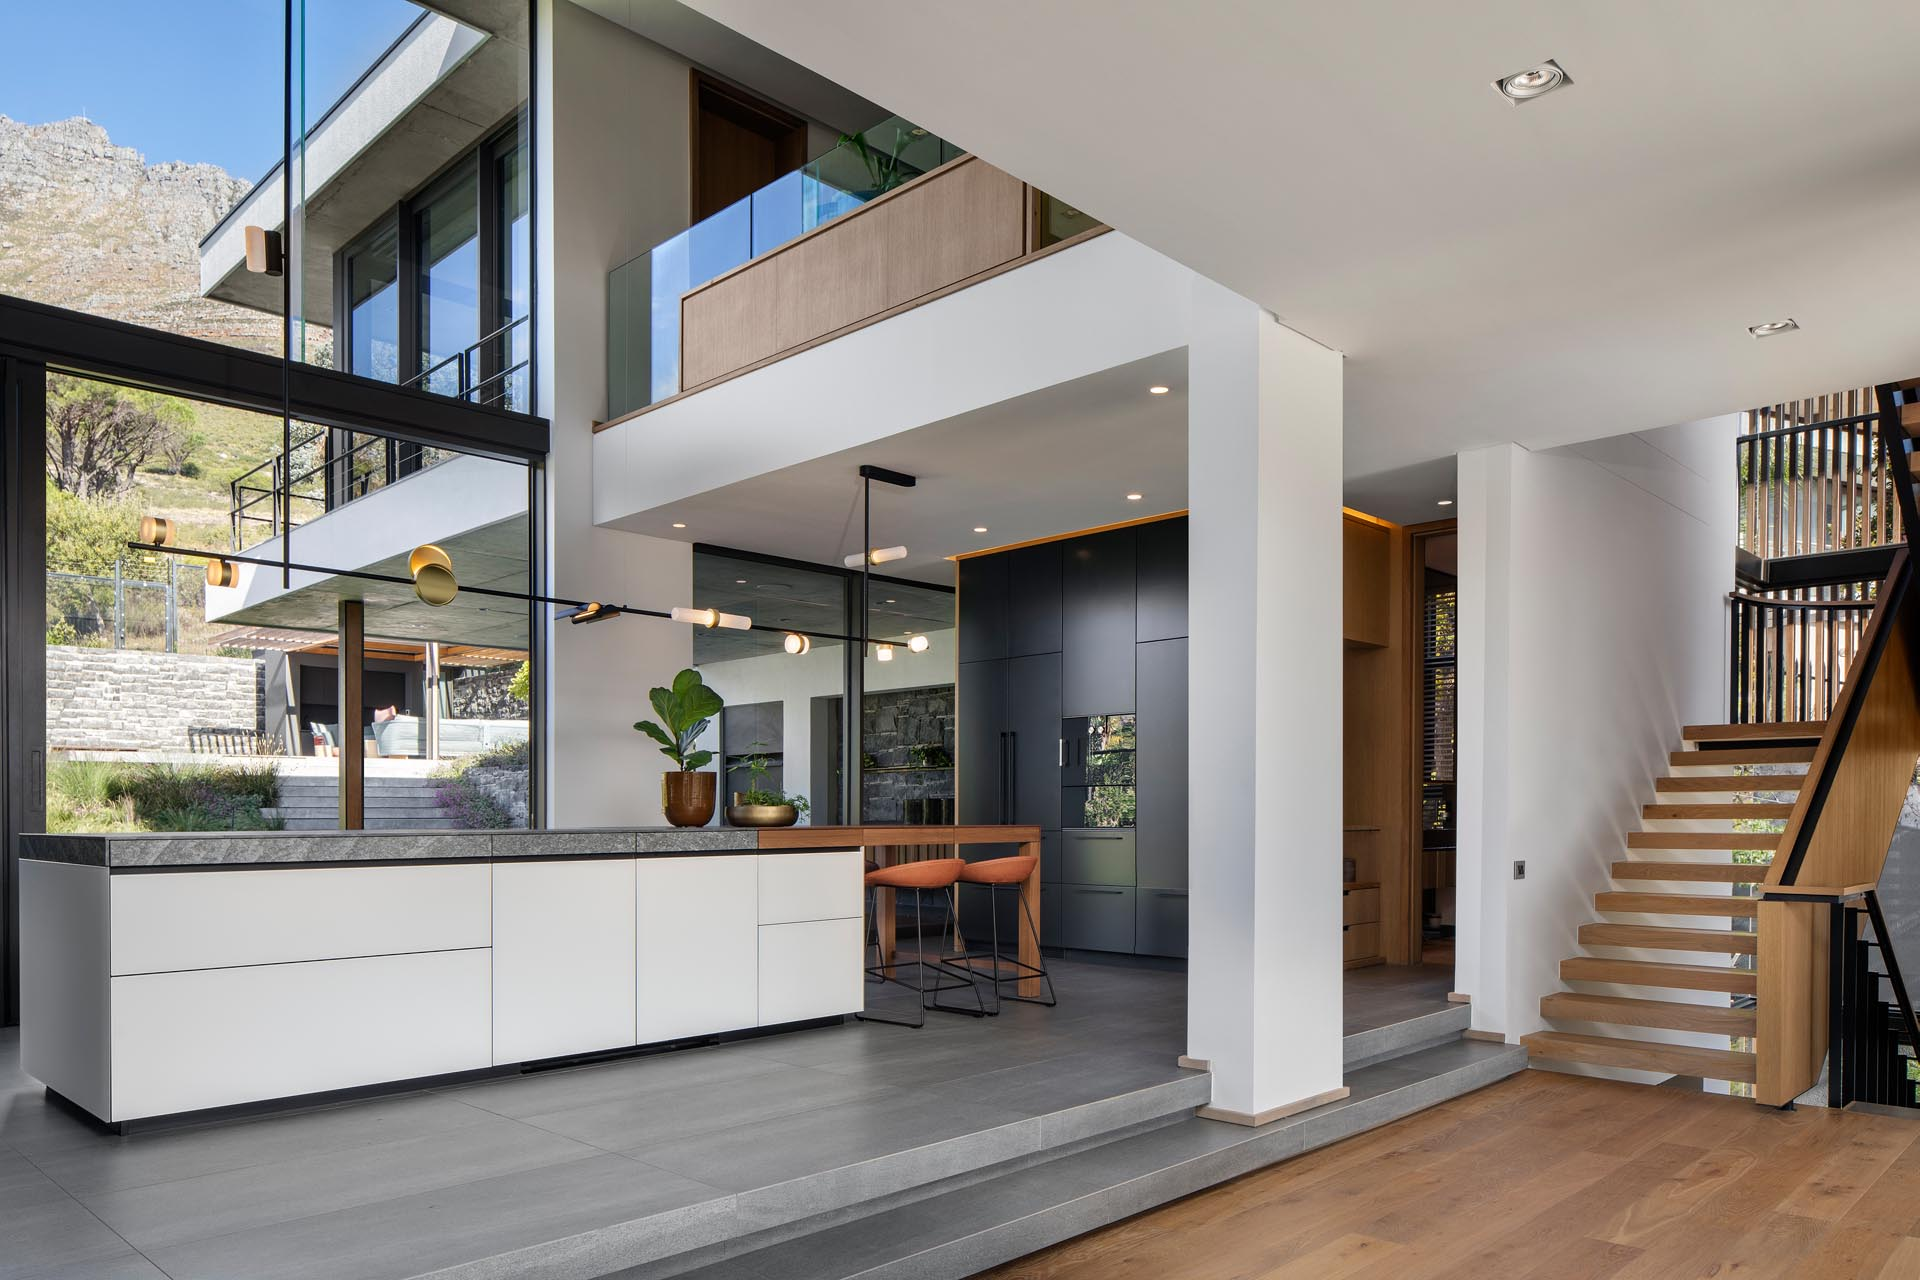 A modern kitchen with minimalist cabinets, a high ceiling, and plenty of windows.